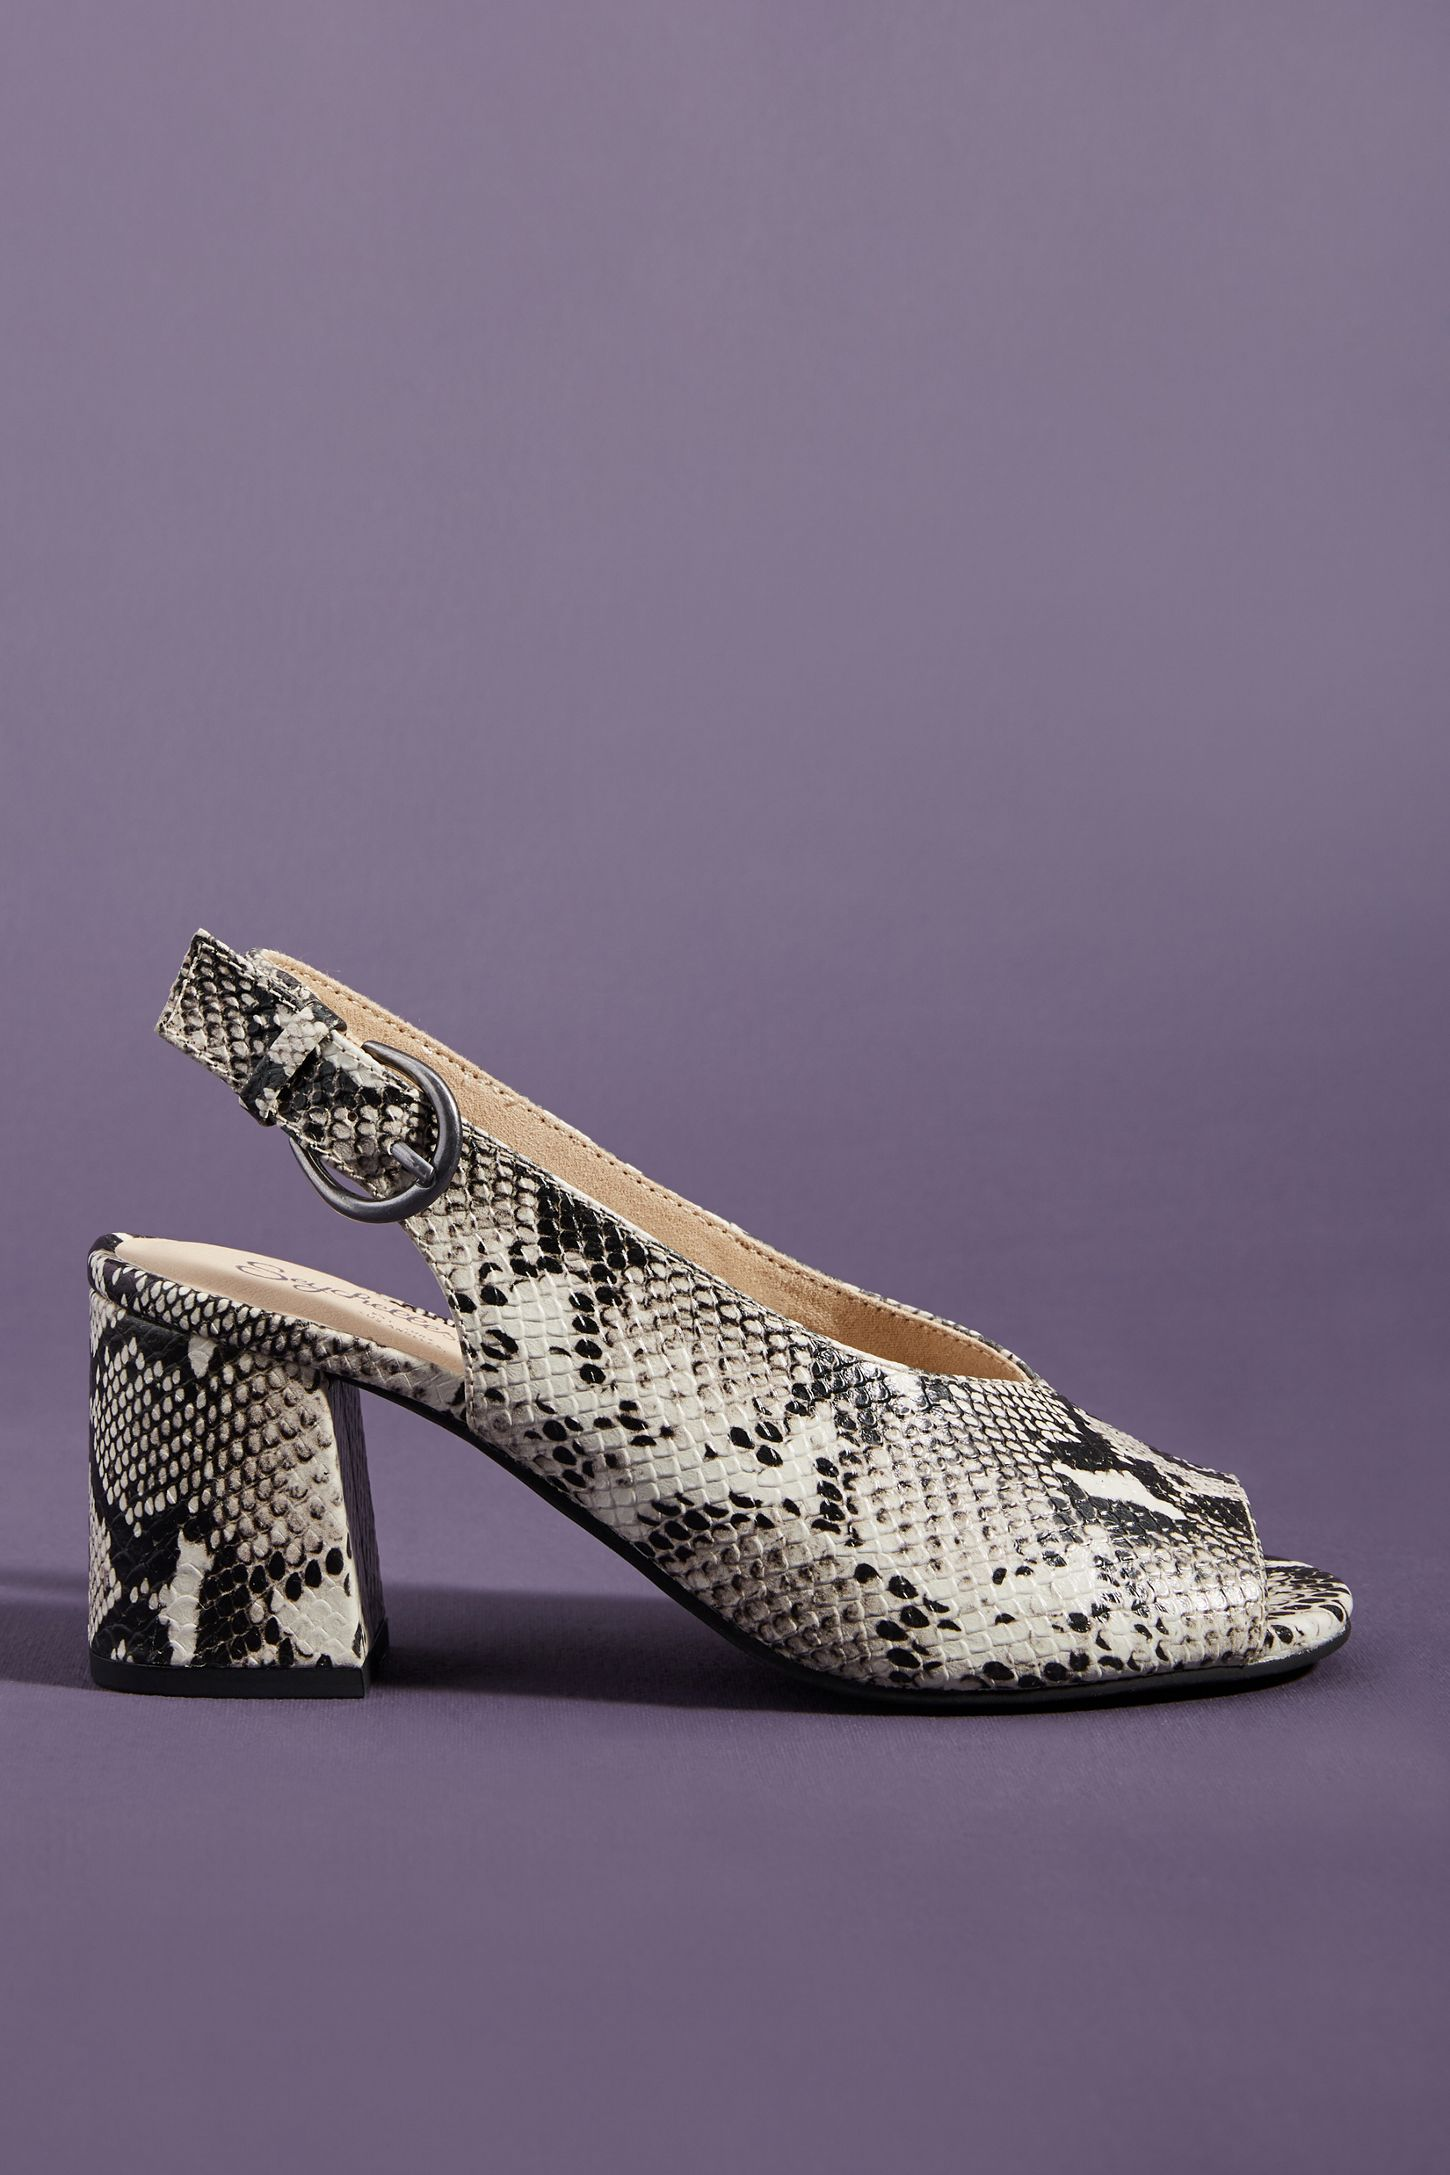 bfd120b247 Seychelles Playwright Slingback Sandals | Anthropologie